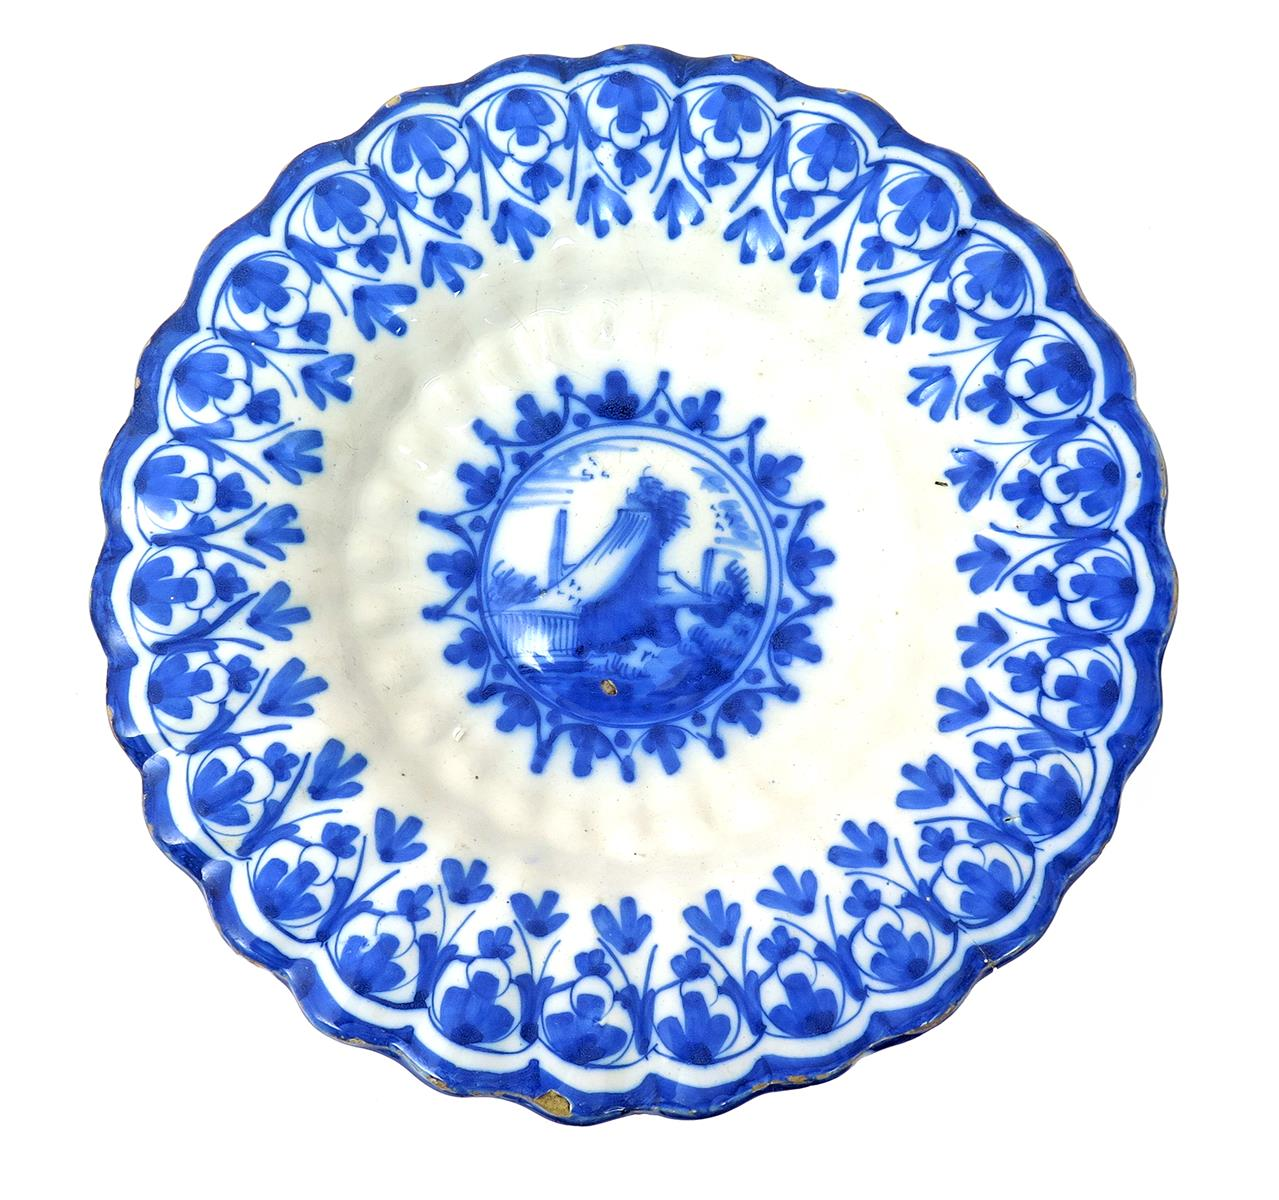 An English delftware lobed dish or cracknell c.1690